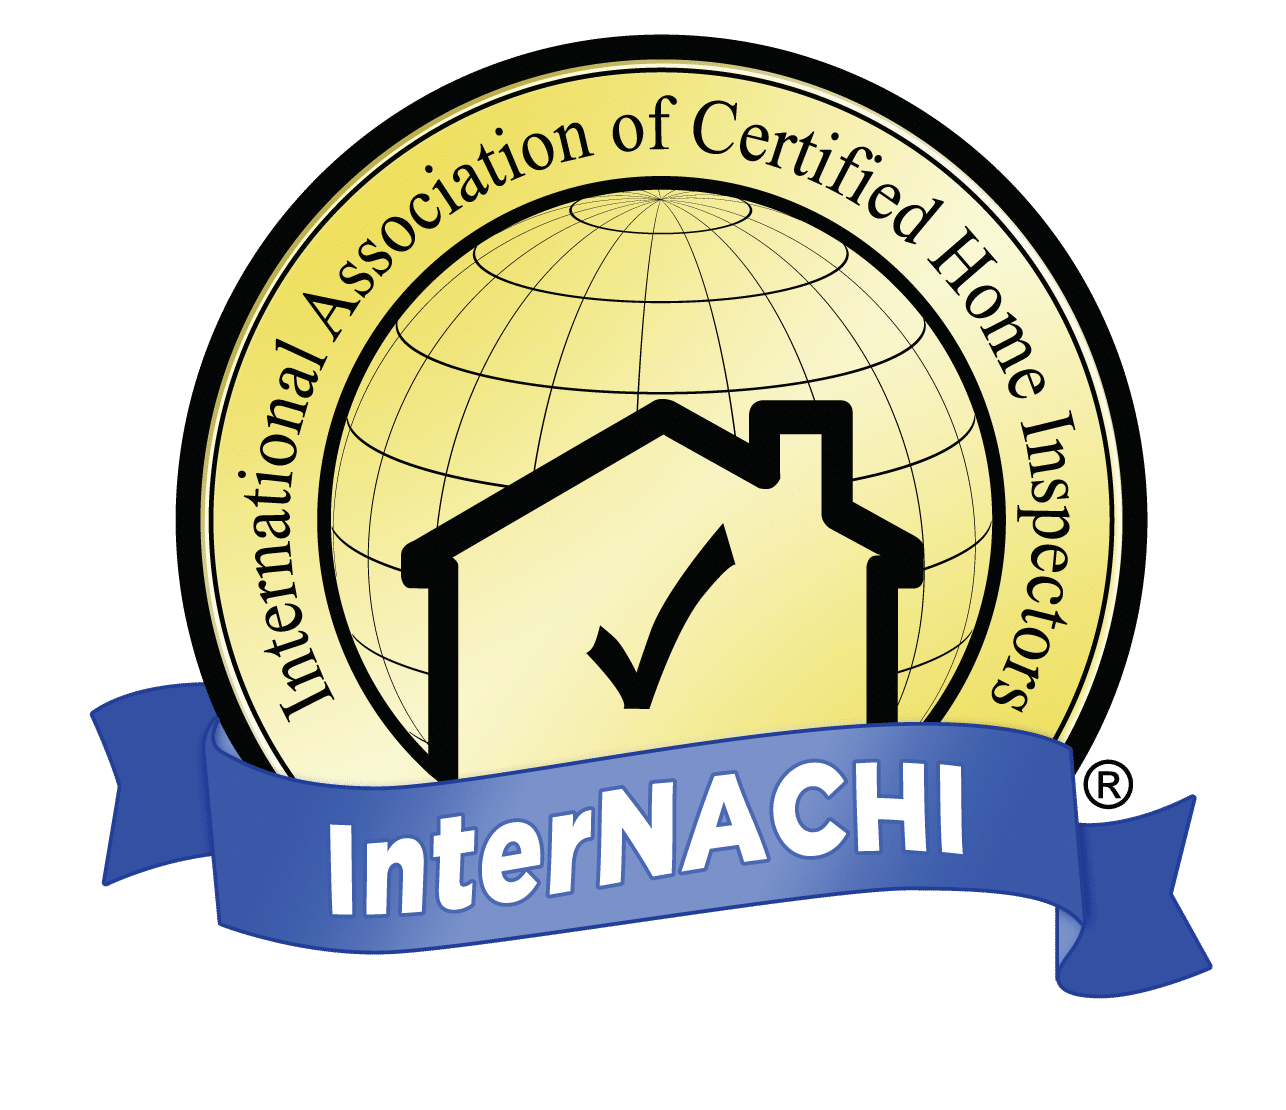 InterNACHI - International Association of Certified Home Inspectors